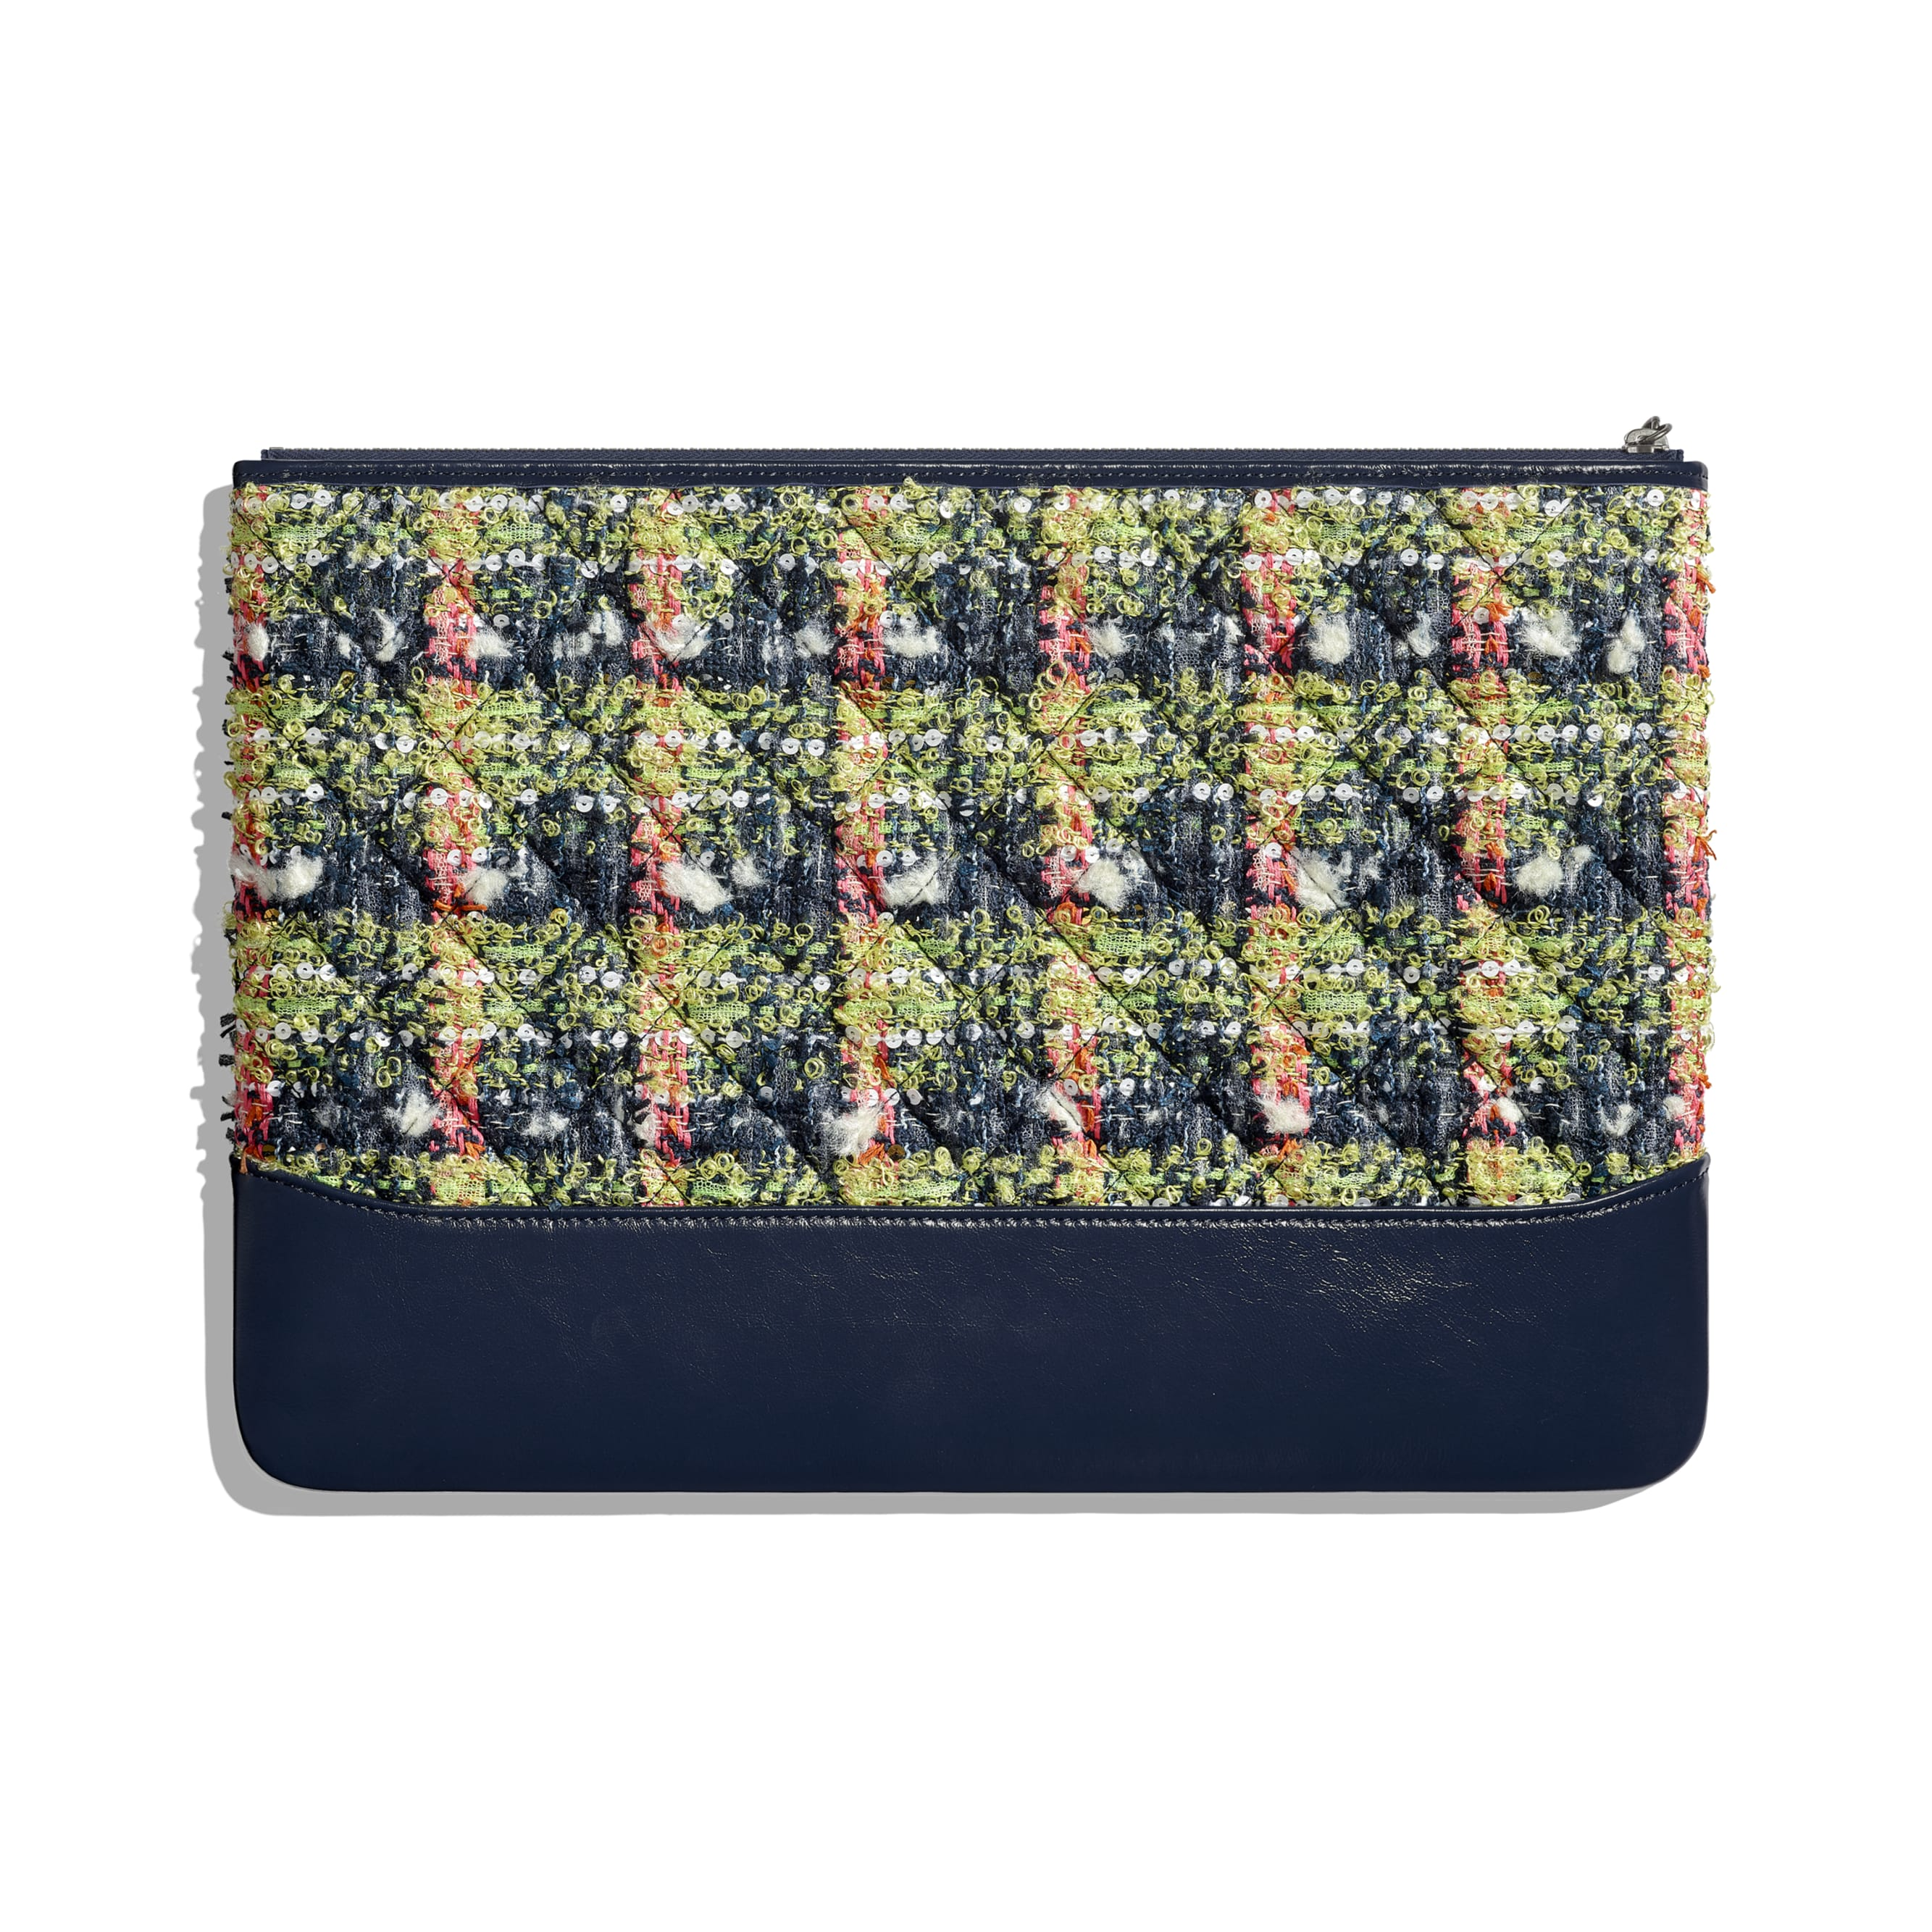 Large Clutch - Navy Blue, Green, Pink & White - Tweed, Calfskin, Gold-Tone, Silver-Tone & Ruthenium-Finish Metal - CHANEL - Alternative view - see standard sized version